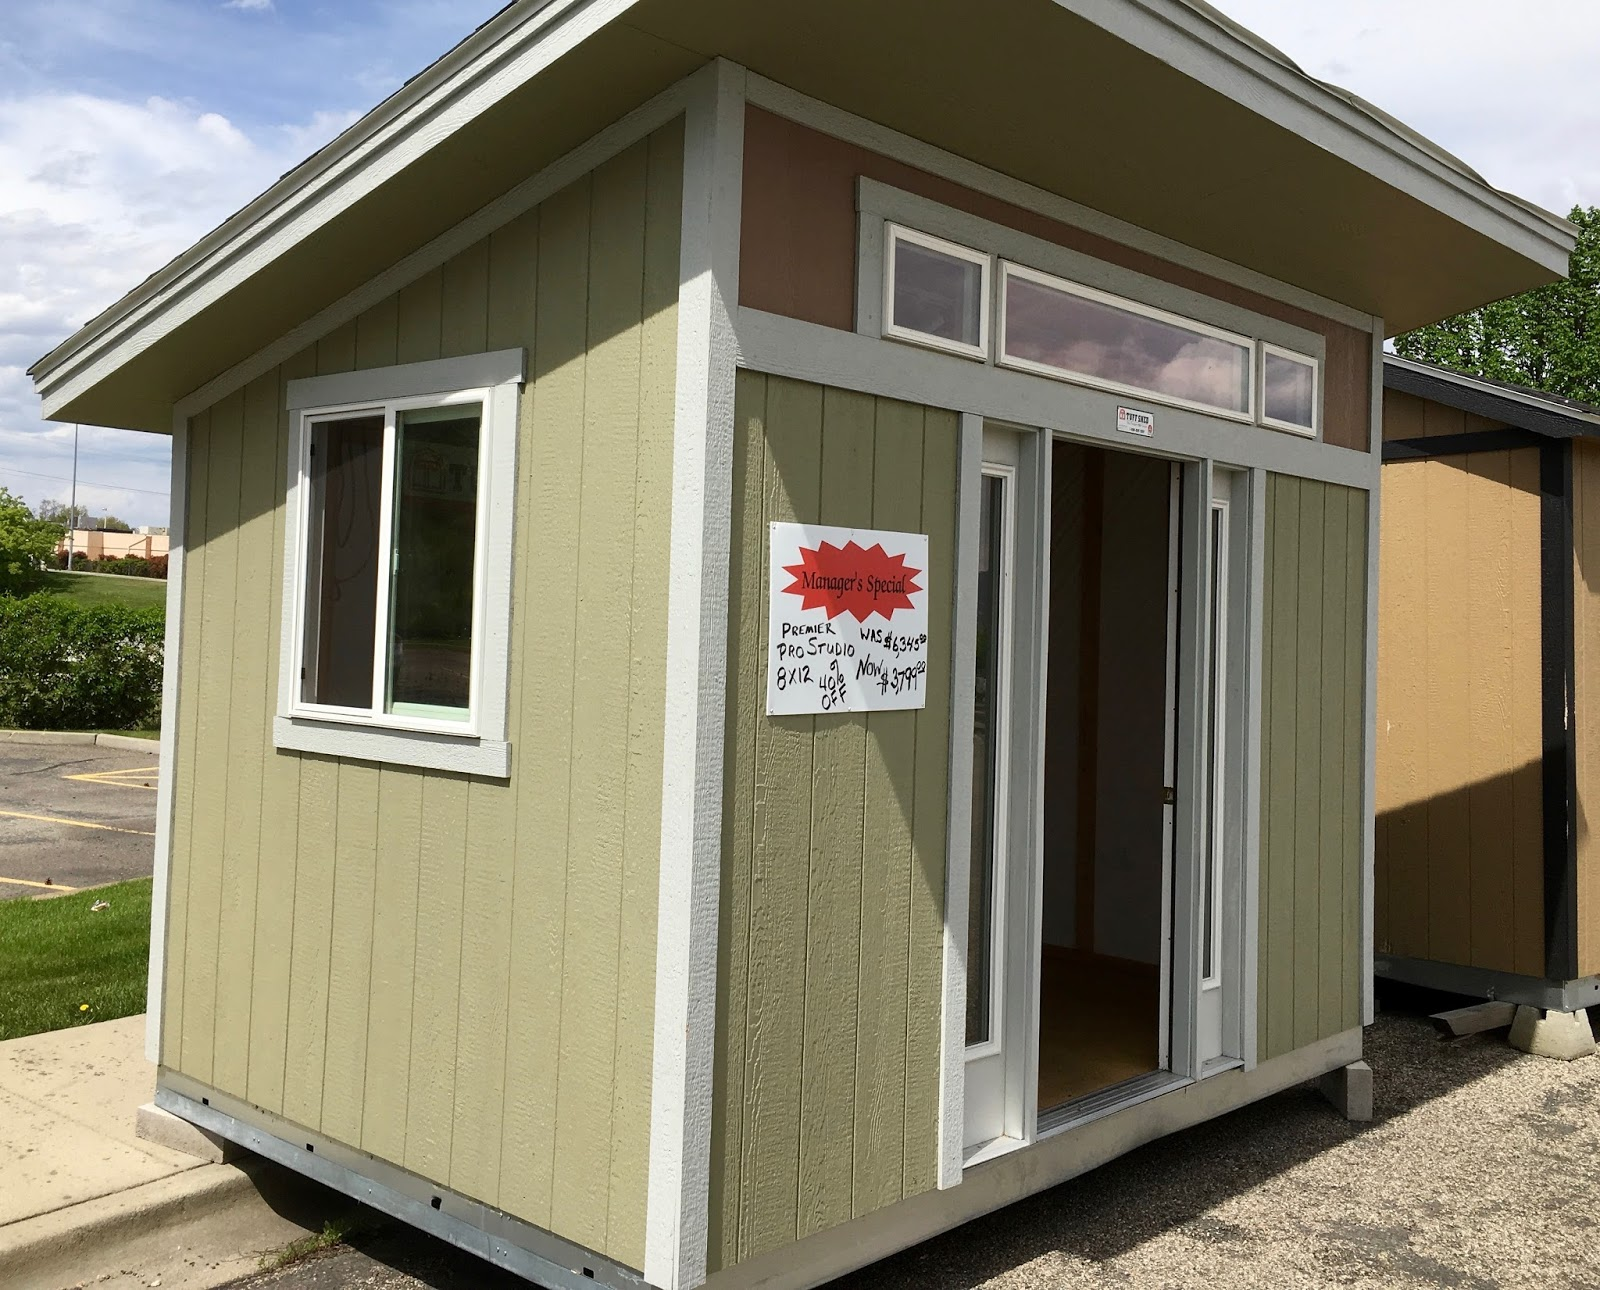 Syonyk 39 s project blog july 2016 for Tuff sheds